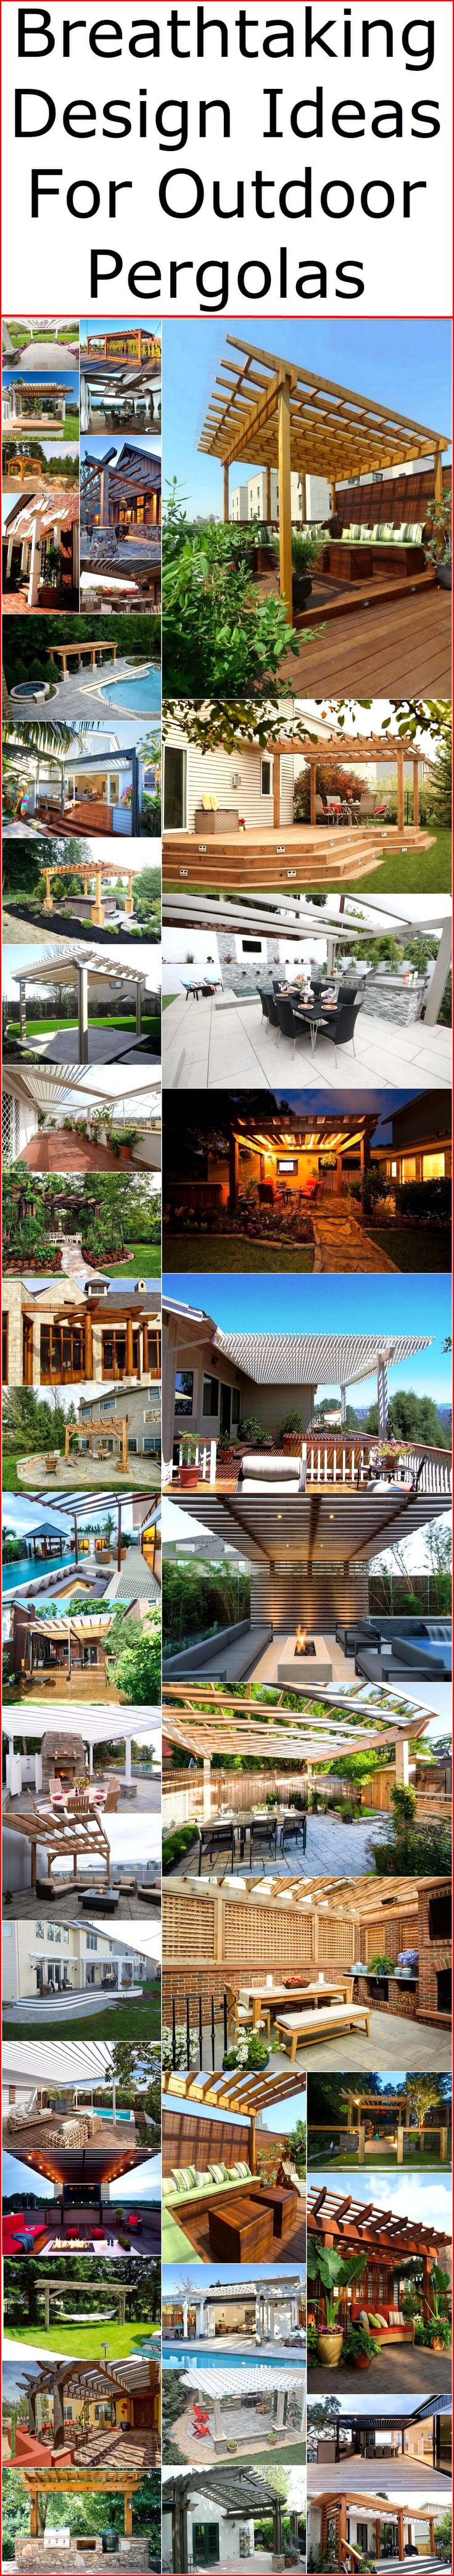 best pergola designs images on pinterest